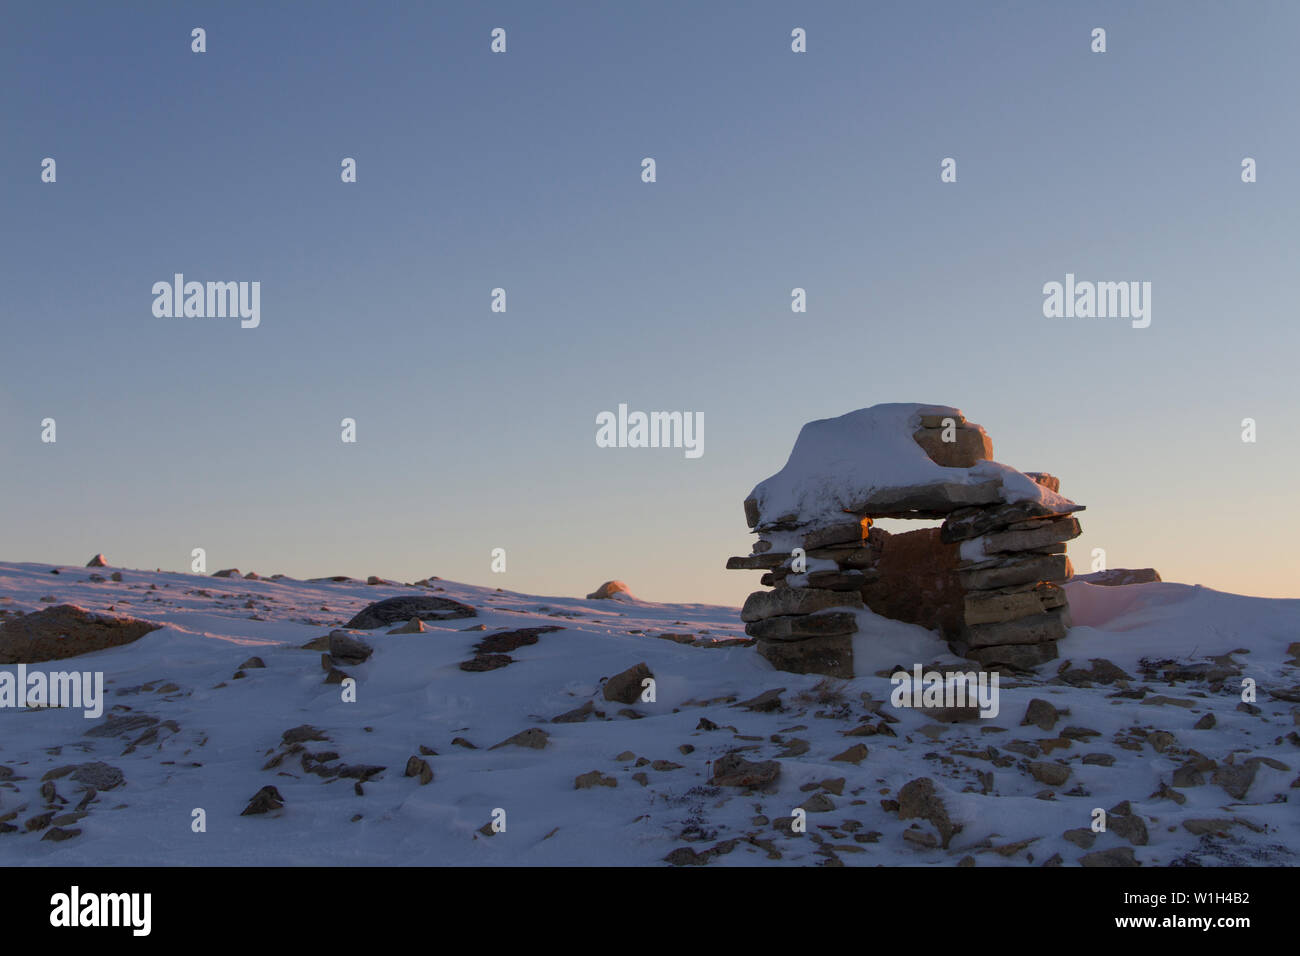 Inuksuk (or spelled Inukshuk) Inuit landmark covered in snow  at sunrise found on a hill near the community of Cambridge Bay, Nunavut, Canada - Stock Image